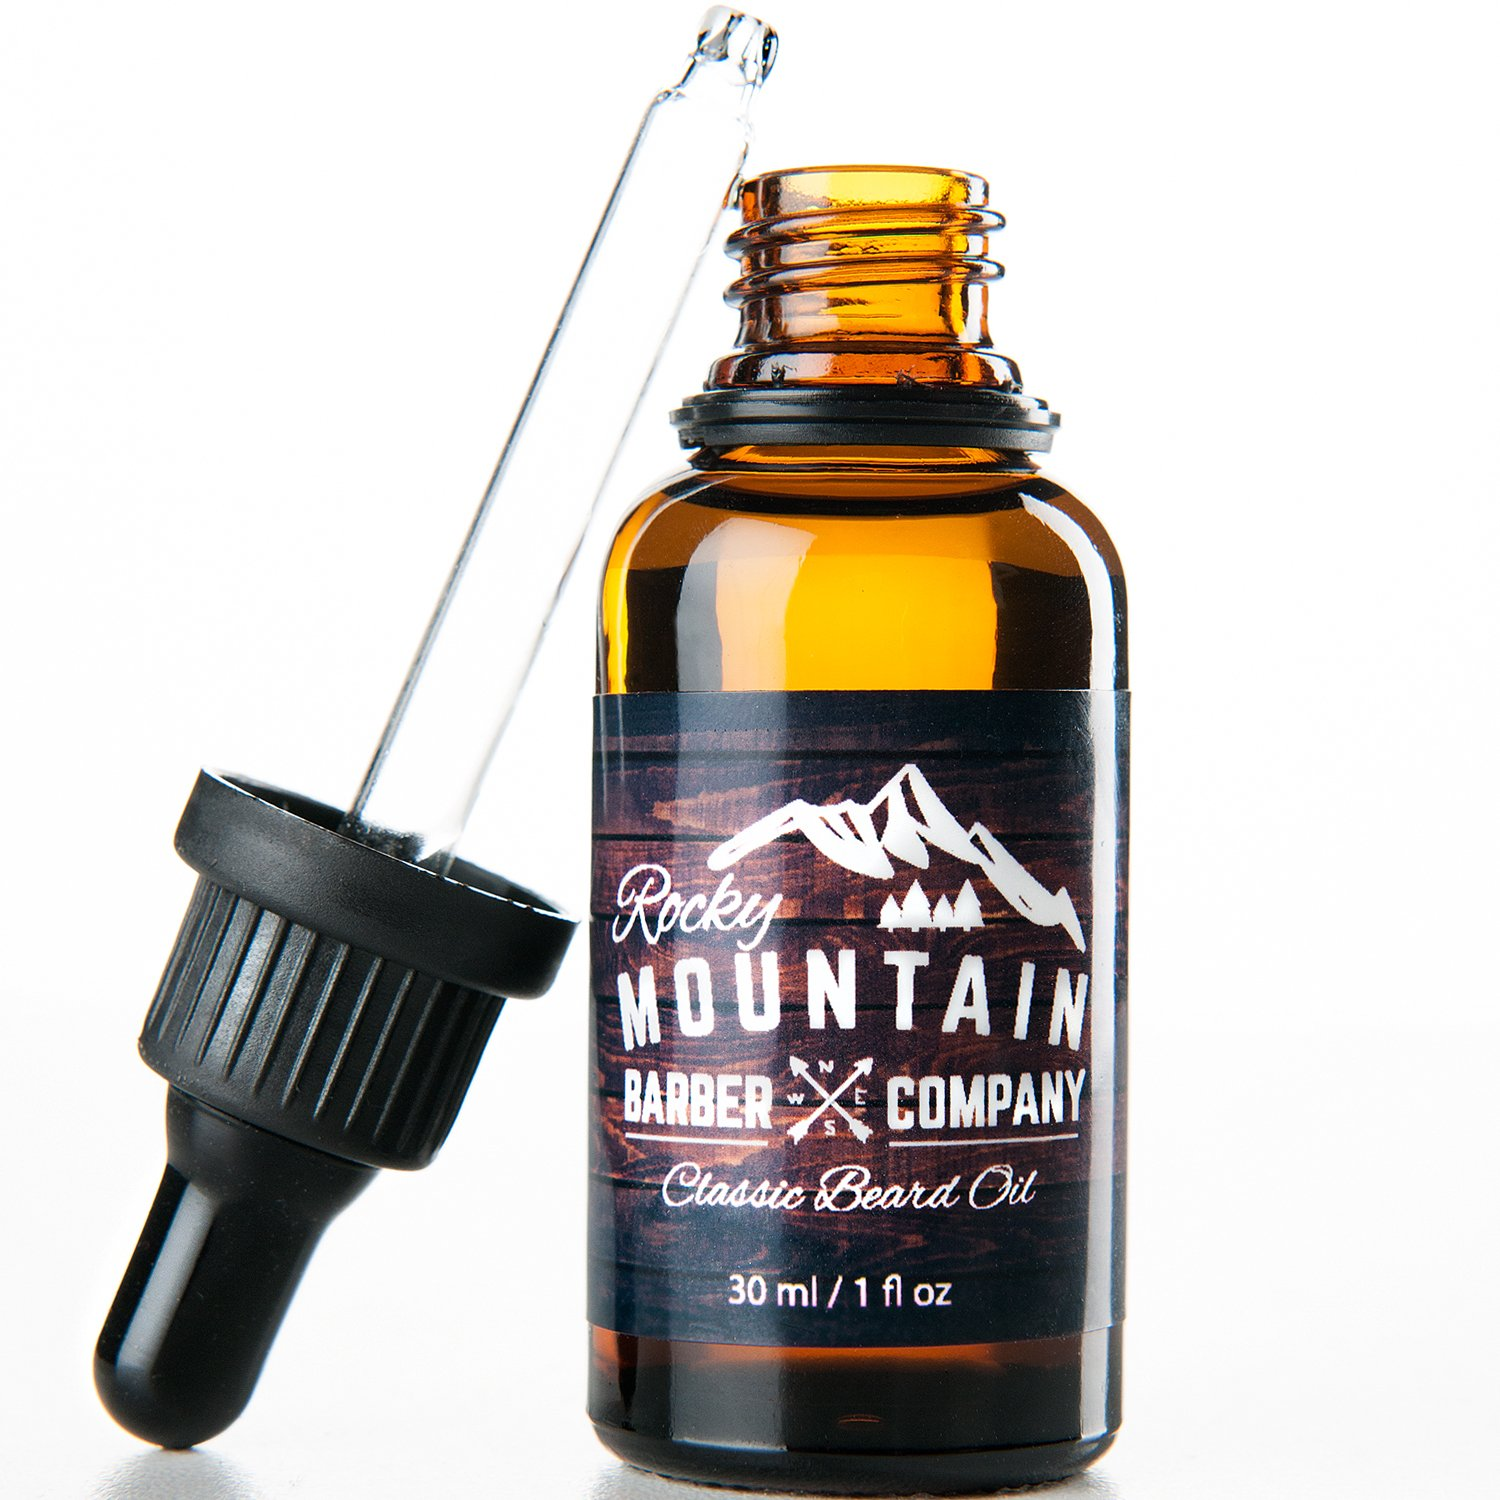 Beard Oil - Unscented - Premium, Cold-Pressed 9 Oil Blend with Jojoba, Coconut Oil by Rocky Mountain Barber Rocky Mountain Barber Company